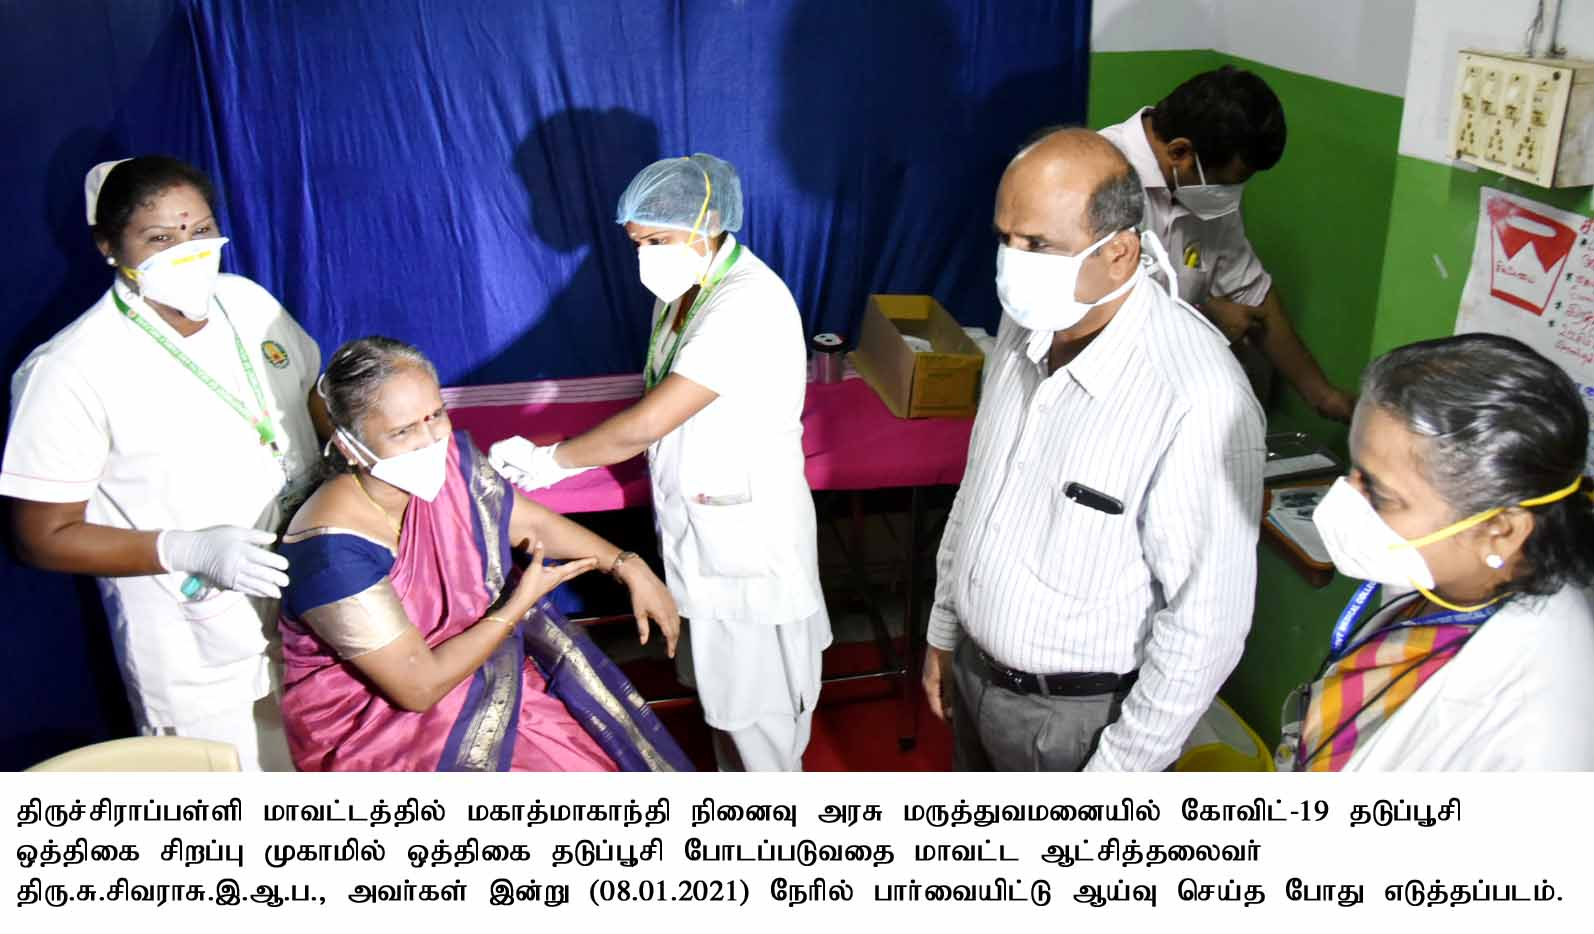 District Collector Visits Government Hospital Regarding Corona Vaccine Injection on 08.01.2021